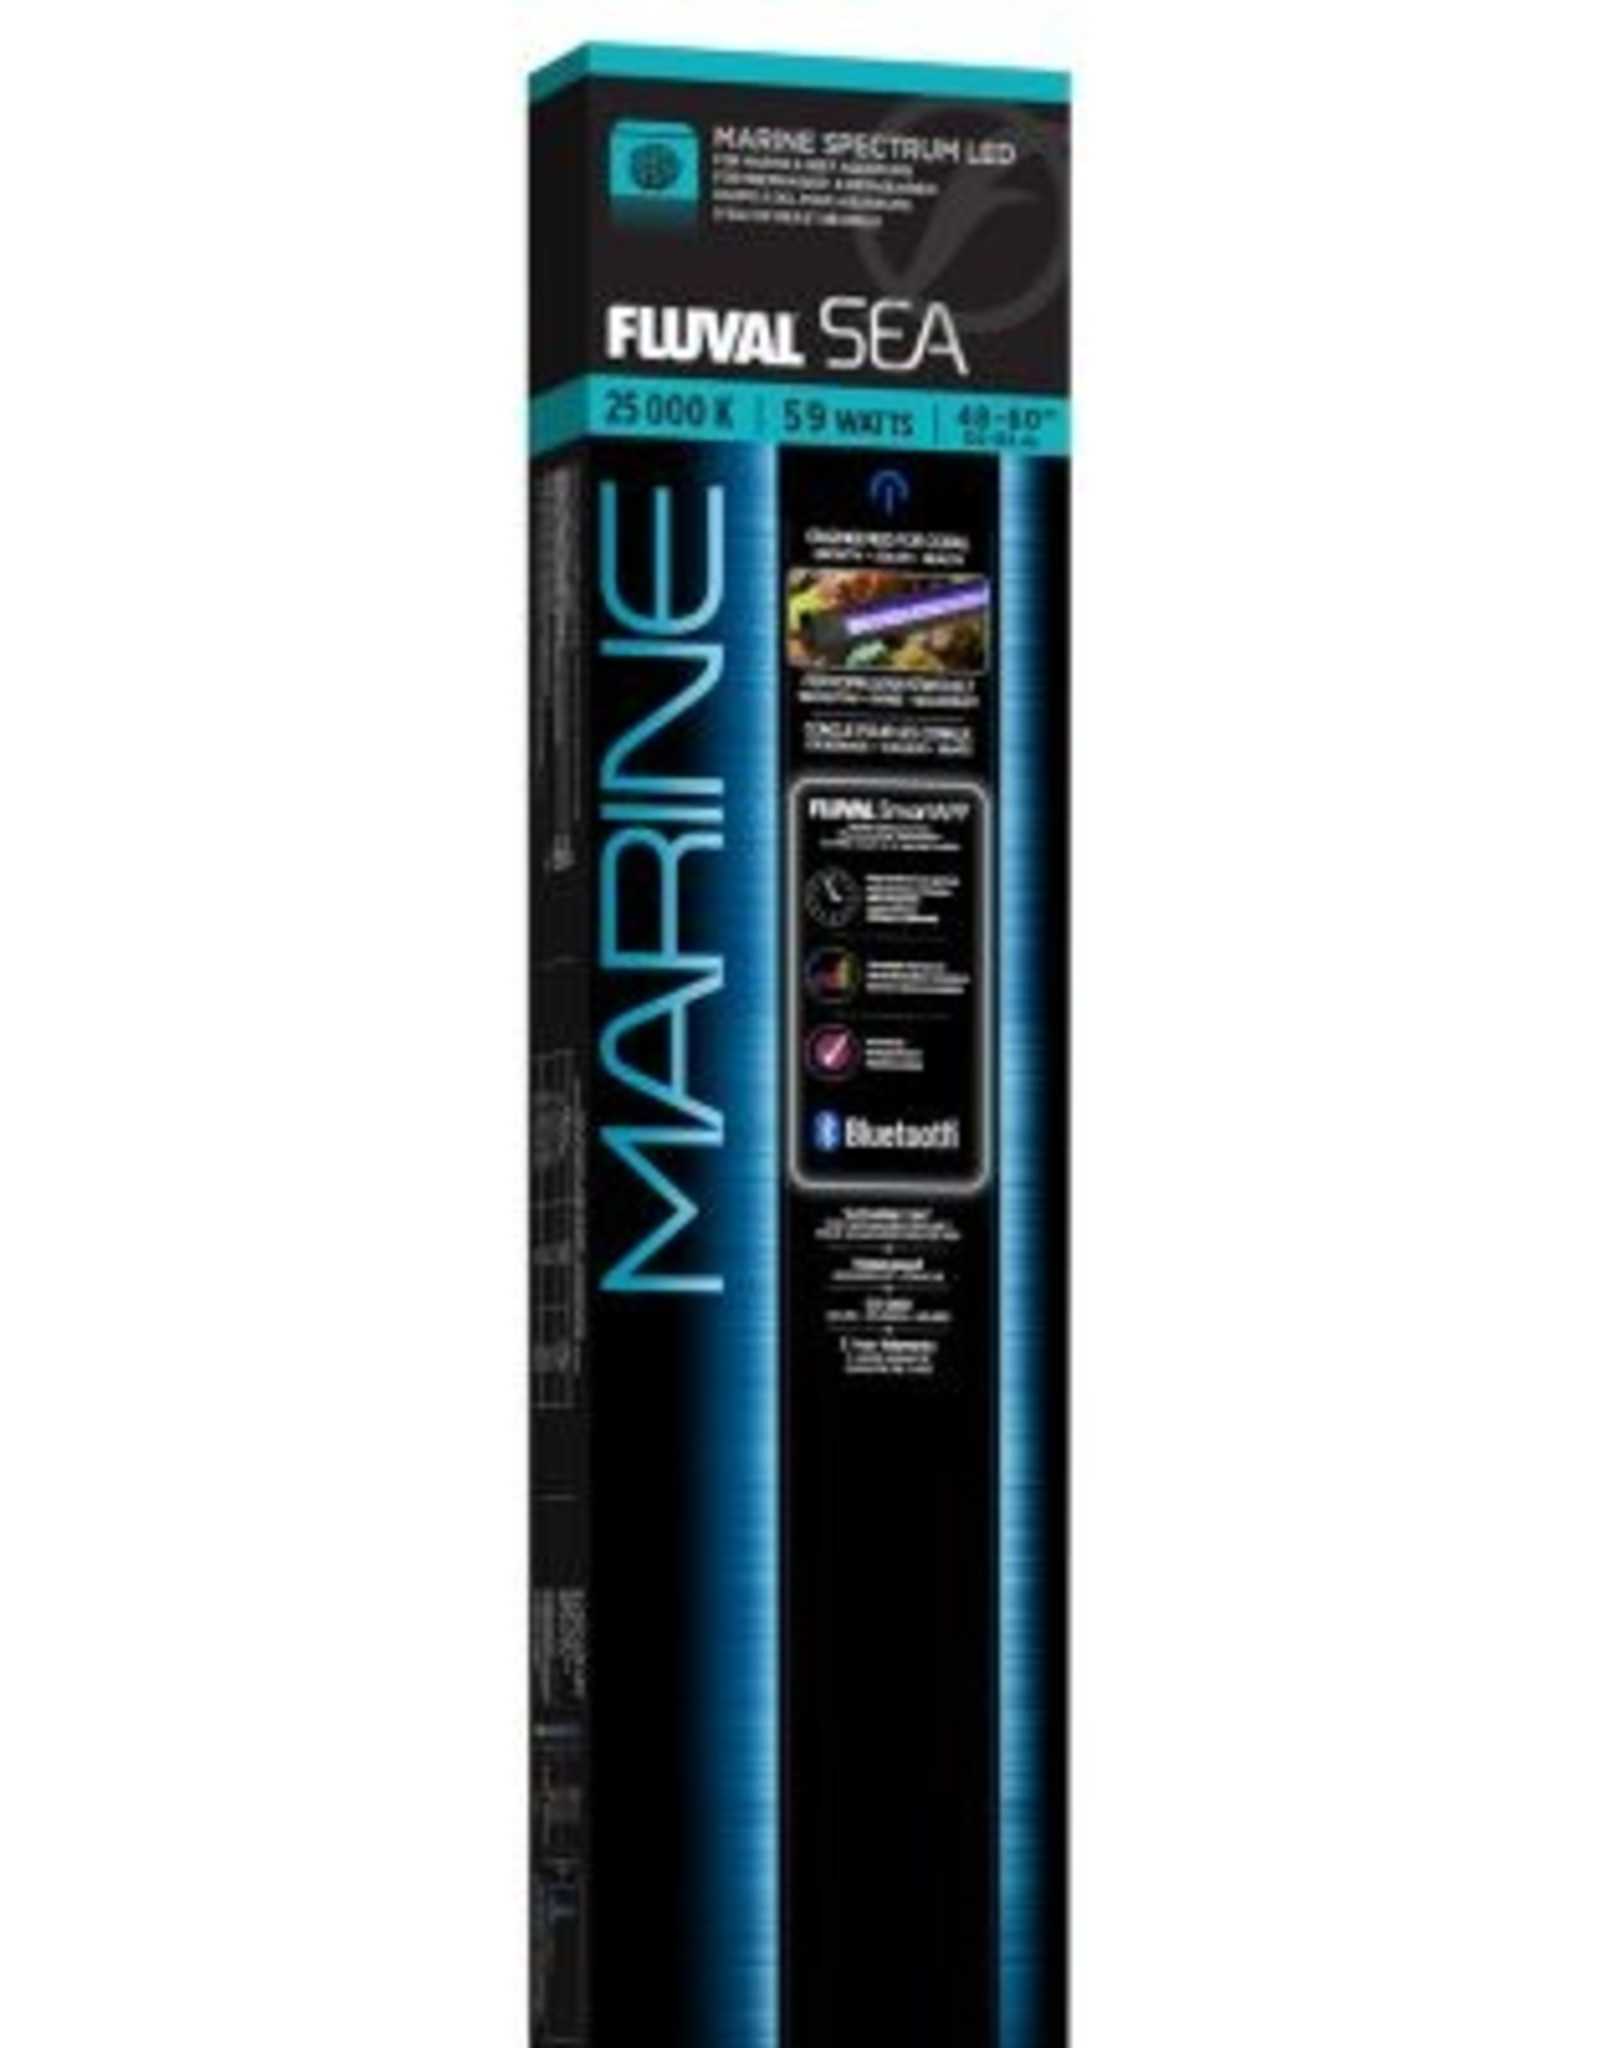 FLUVAL FLUVAL MARINE 3.0 SPECTRUM BLUETOOTH LED 59W 48-60""